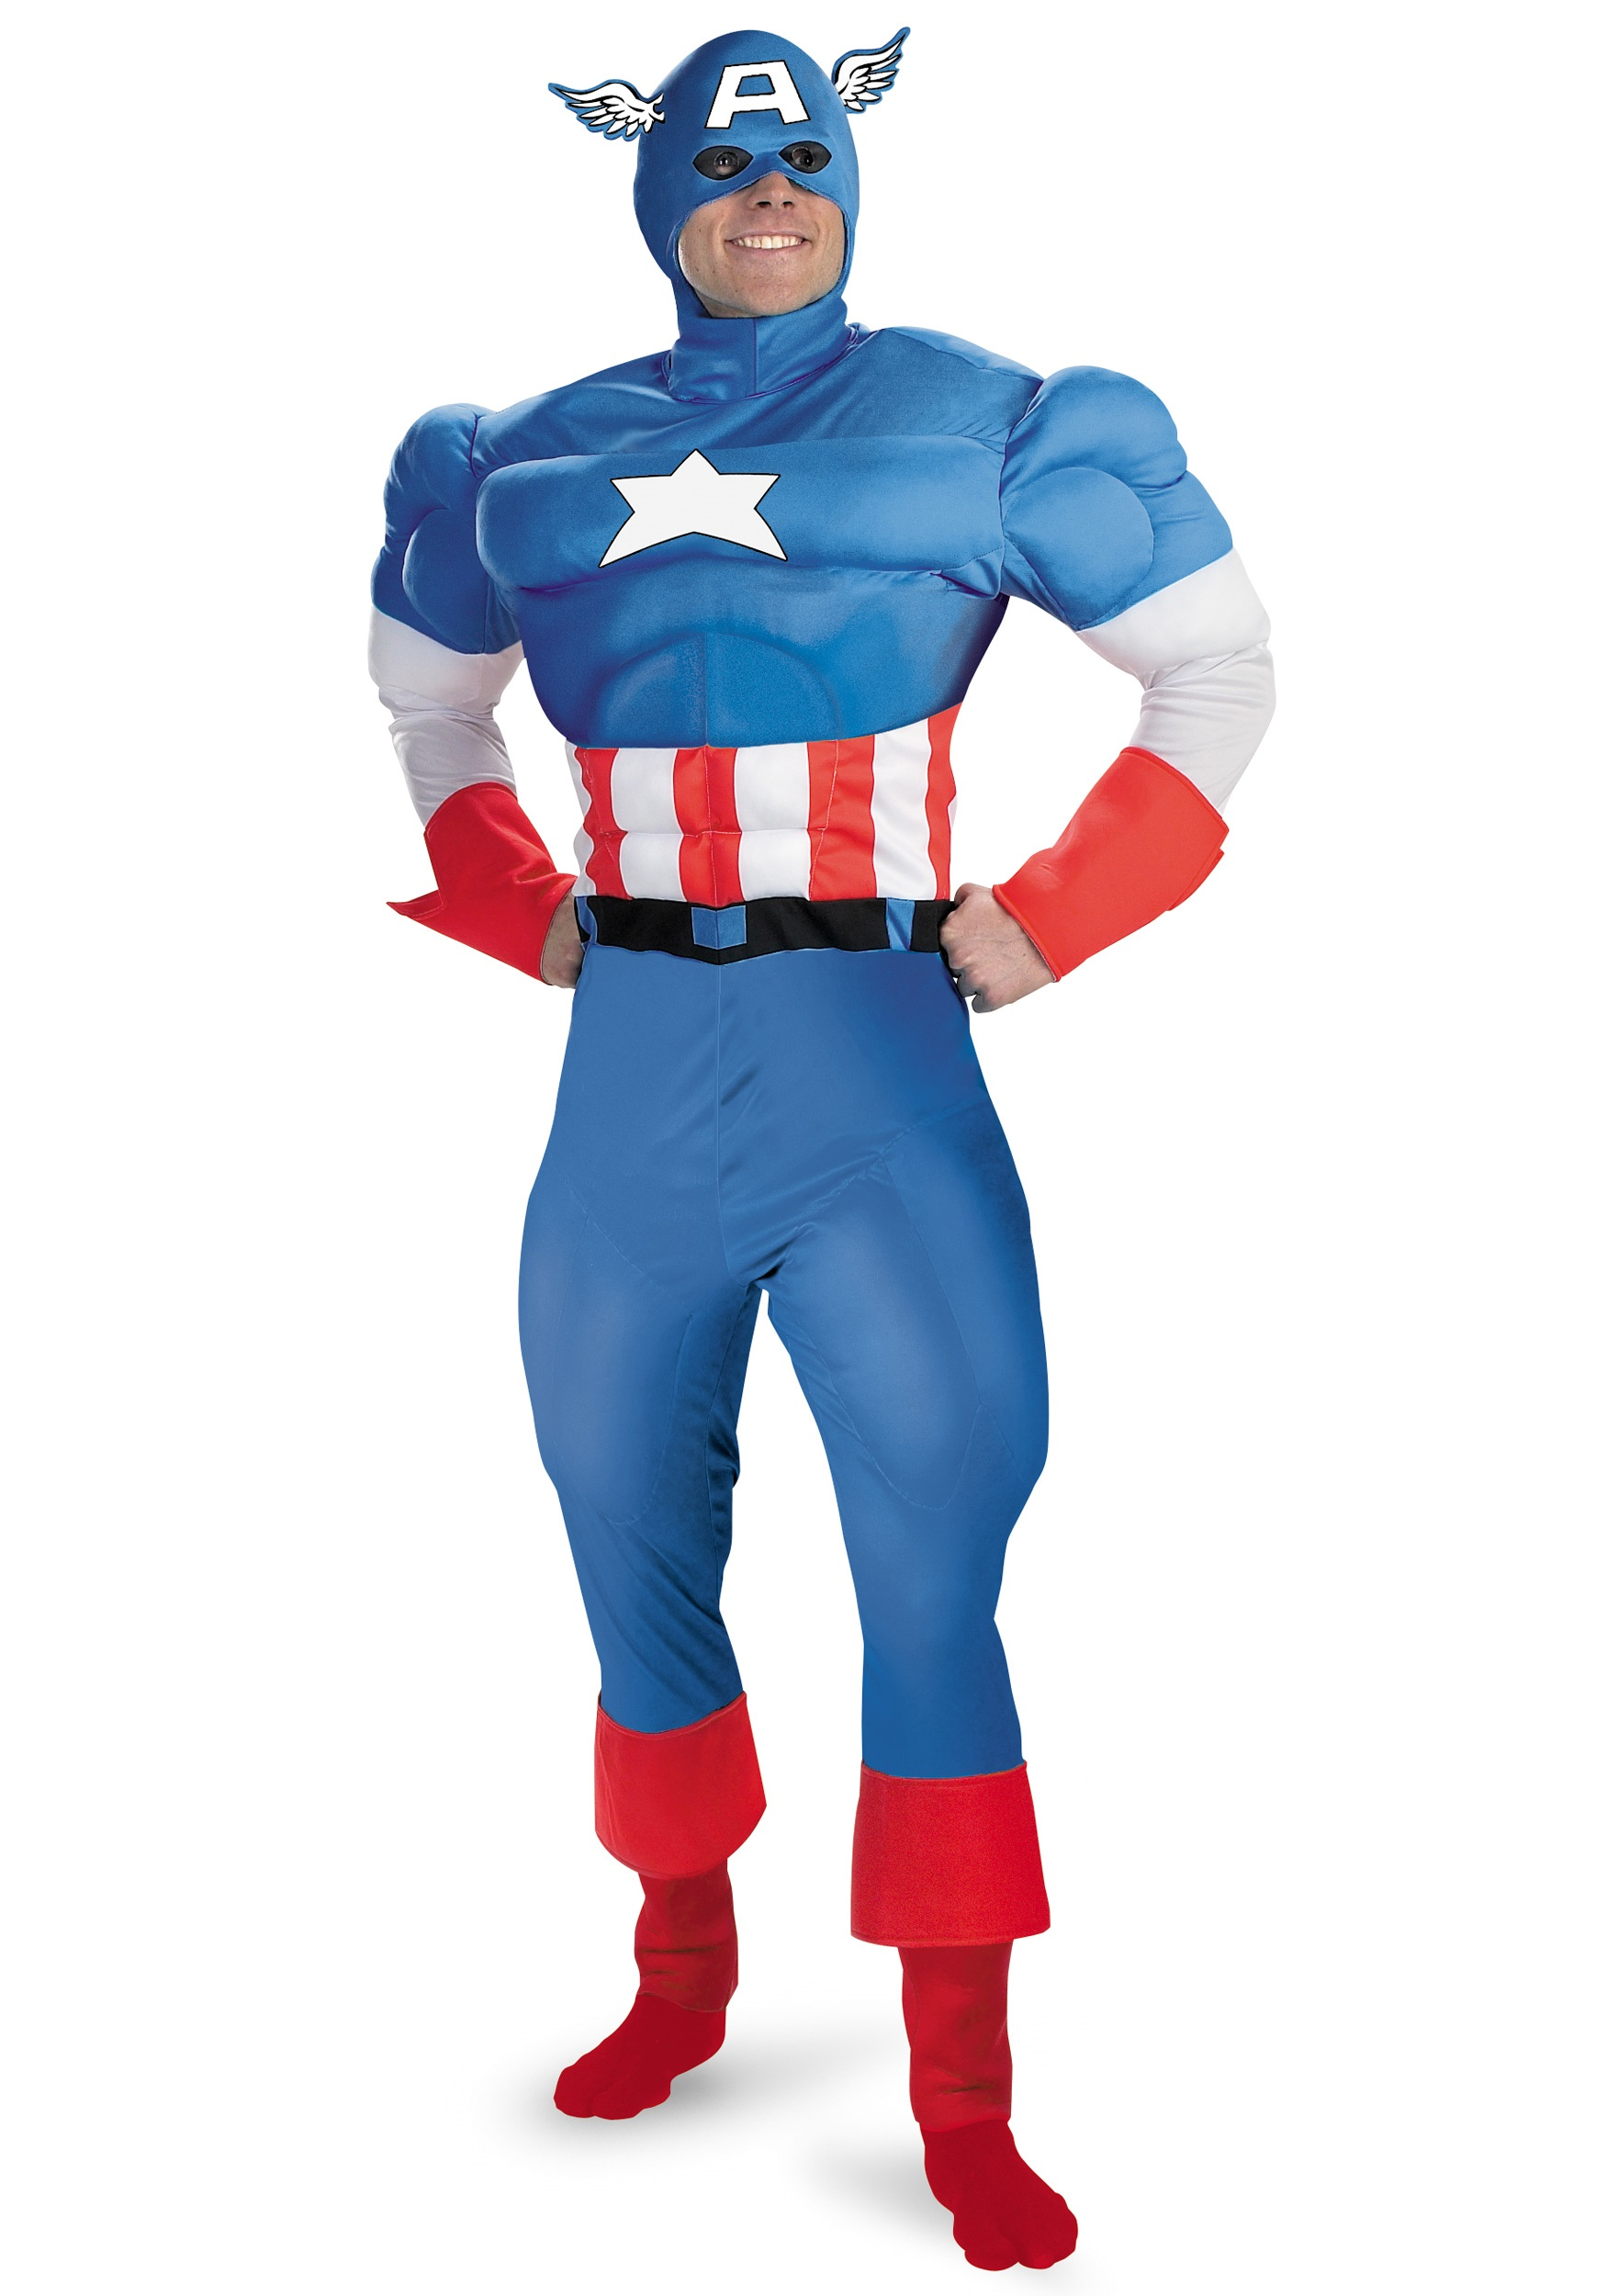 Captain America Costume  sc 1 st  Halloween Costumes & Captain America Costume - Halloween Costumes